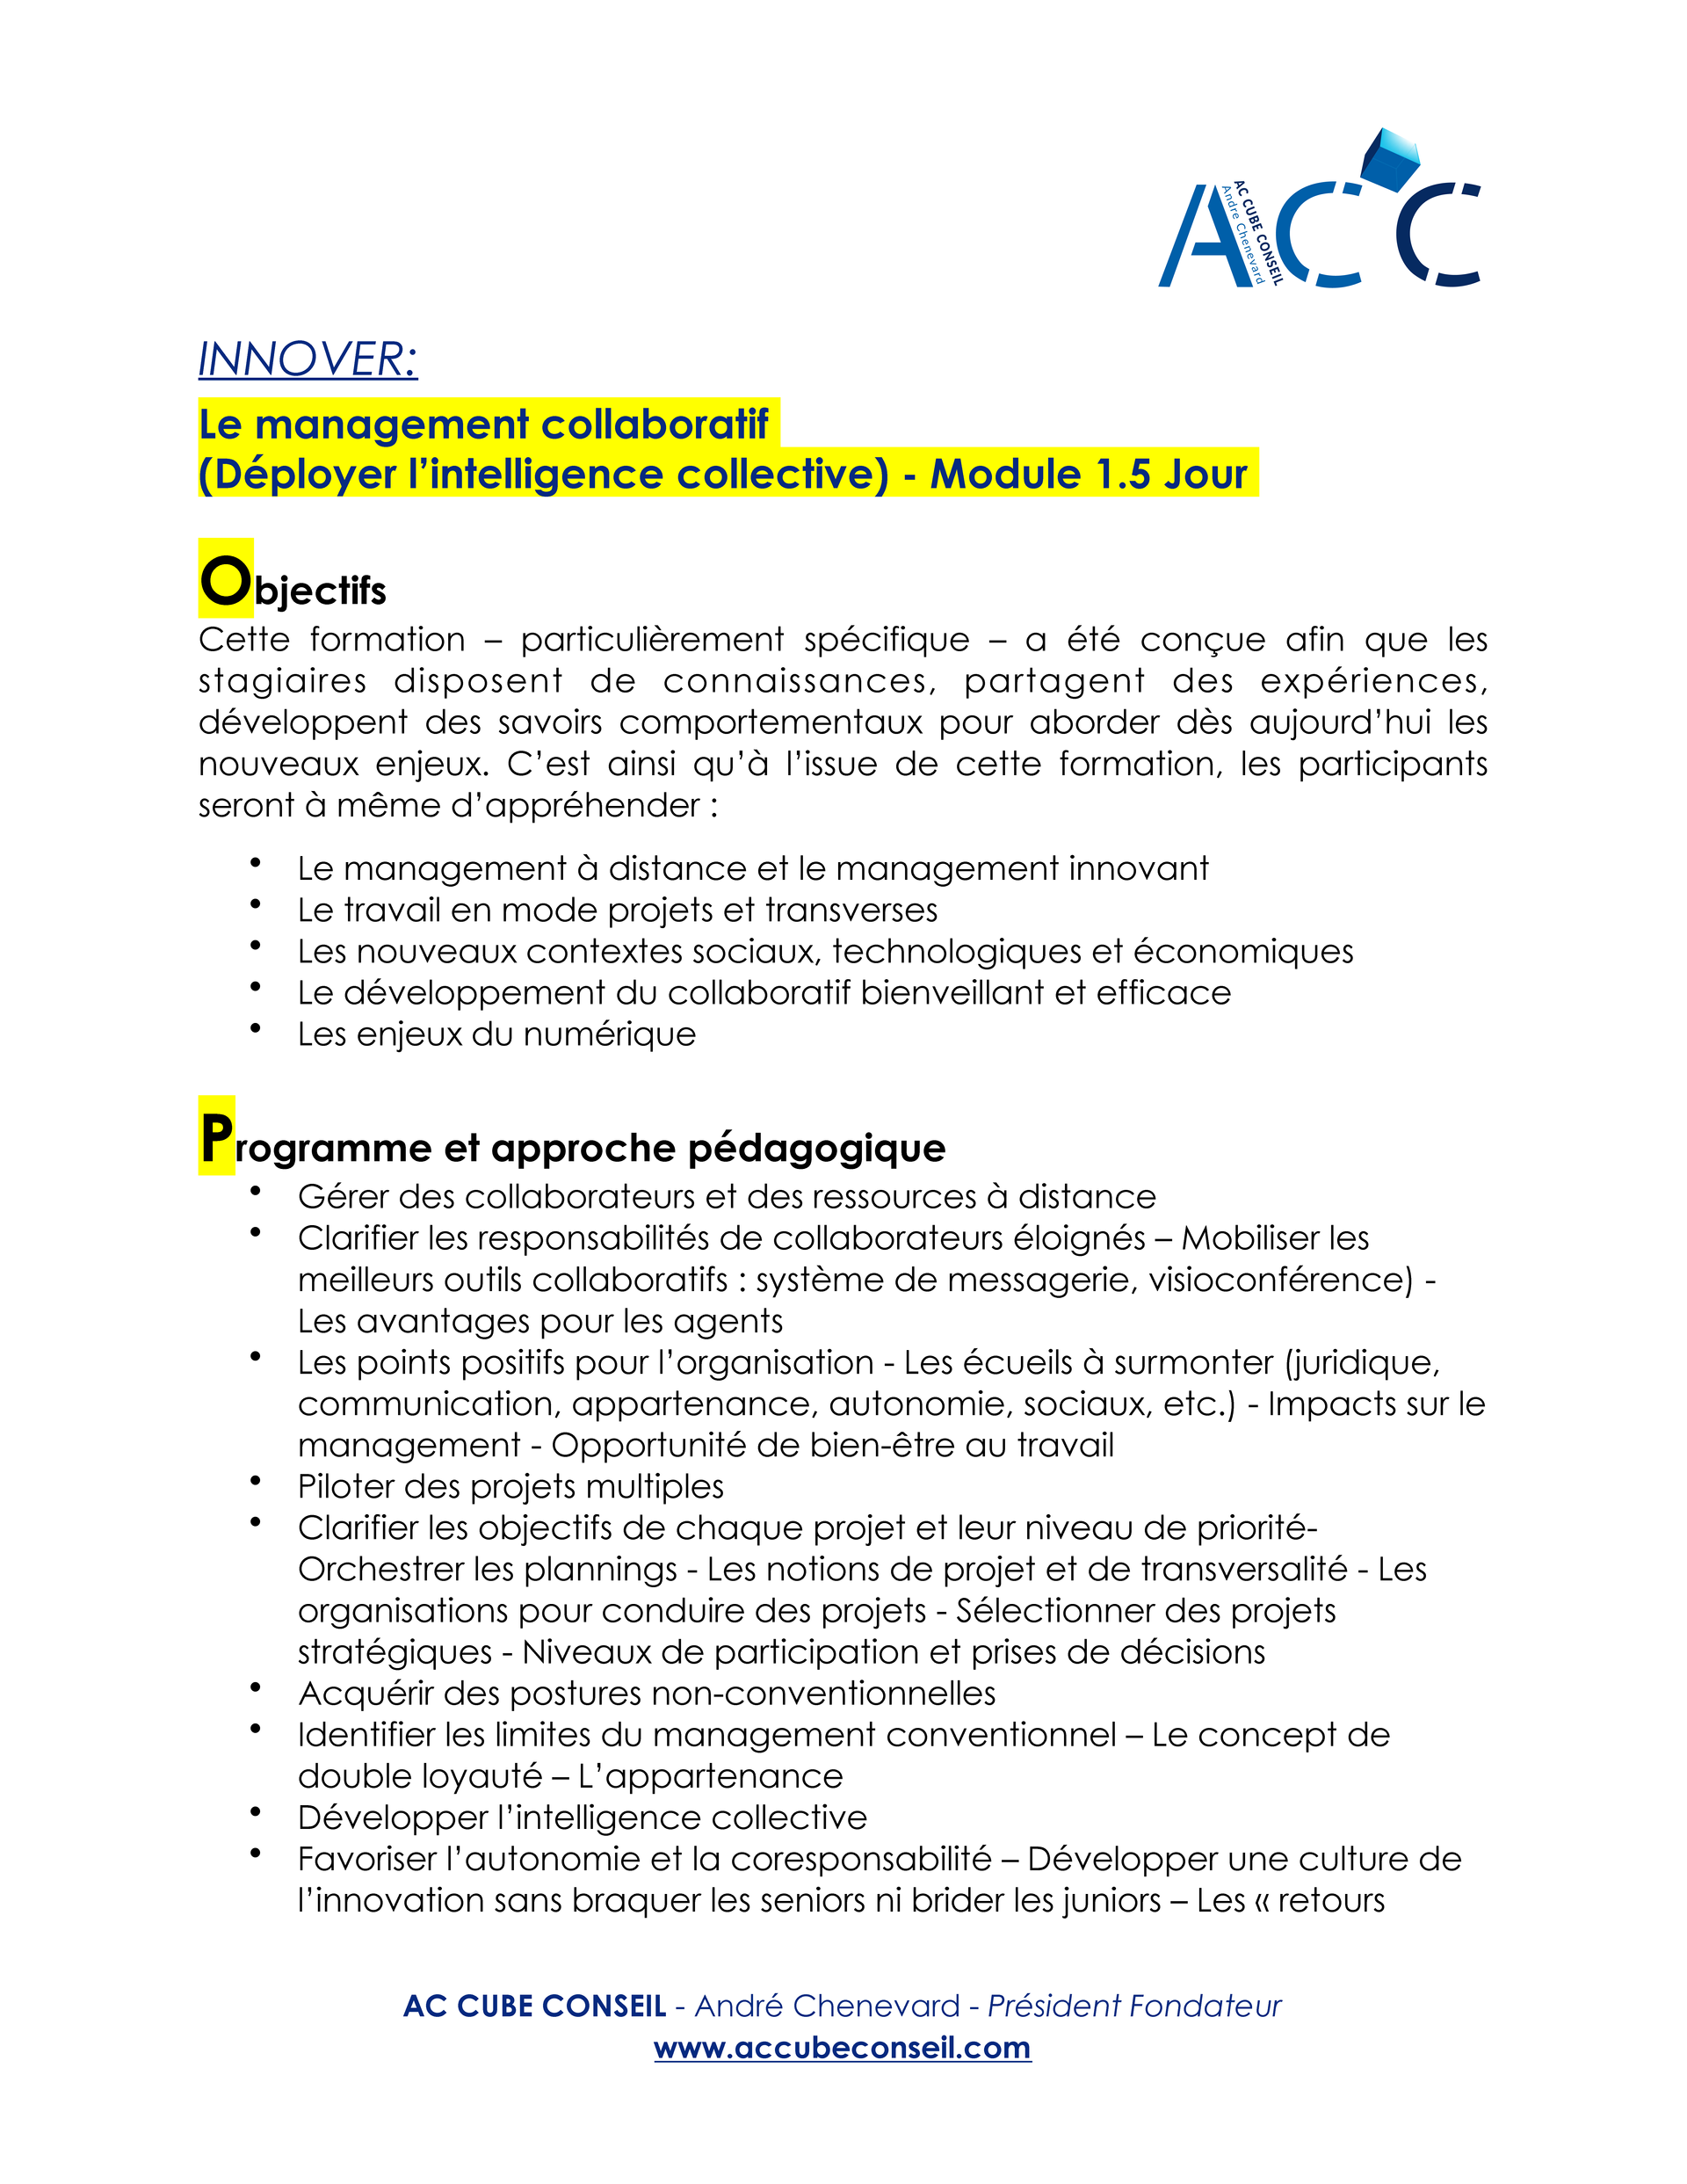 AC CUBE CONSEIL - INNOVER_Page_09.png